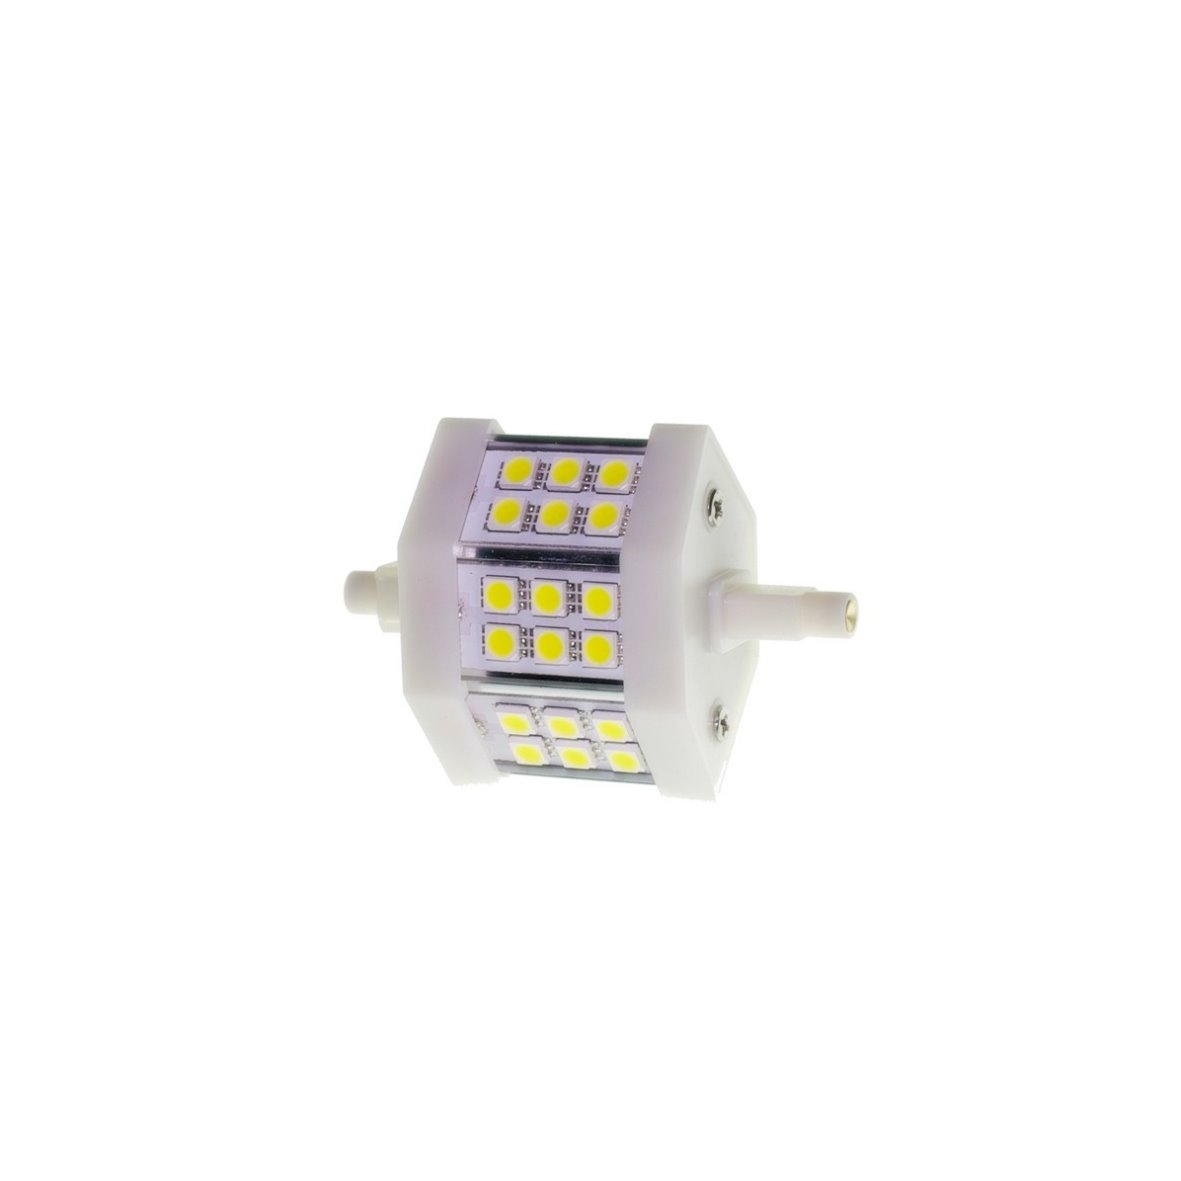 led smd r7s leuchtmittel 78 118 mm deckenfluter halogen stab 10w r7 leuchte ebay. Black Bedroom Furniture Sets. Home Design Ideas